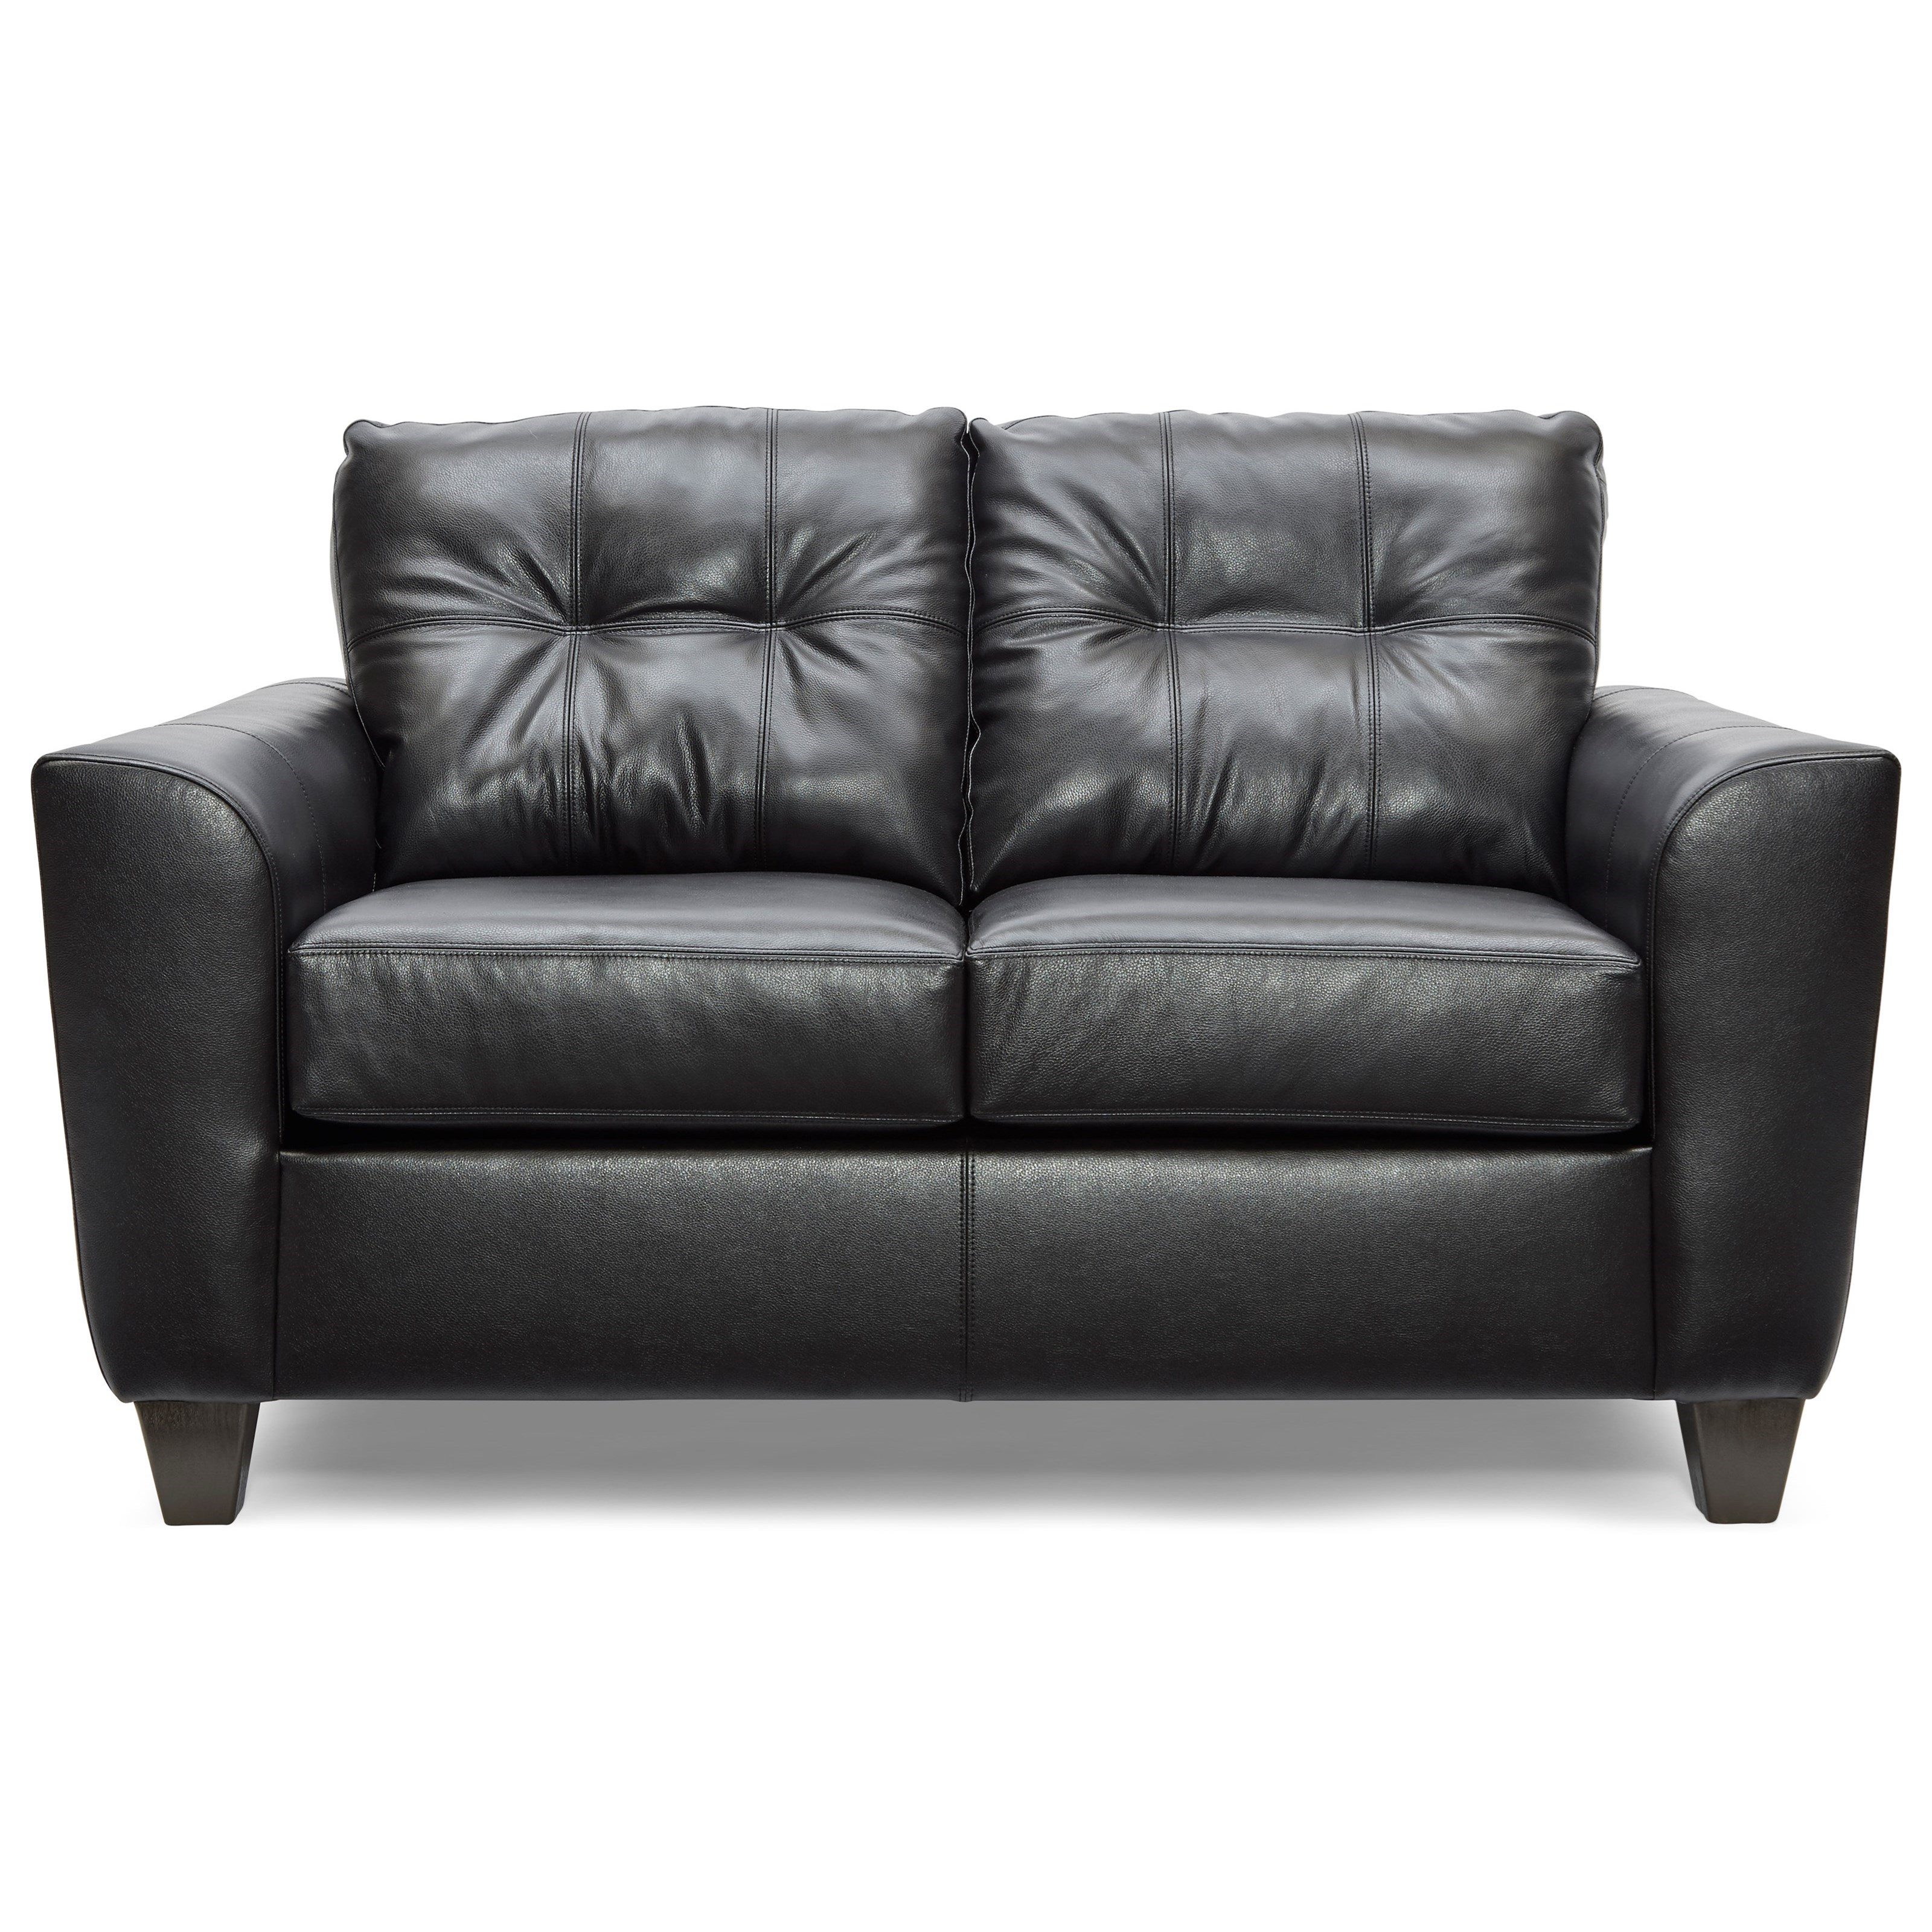 Chadwick Loveseat by Lane at Powell's Furniture and Mattress